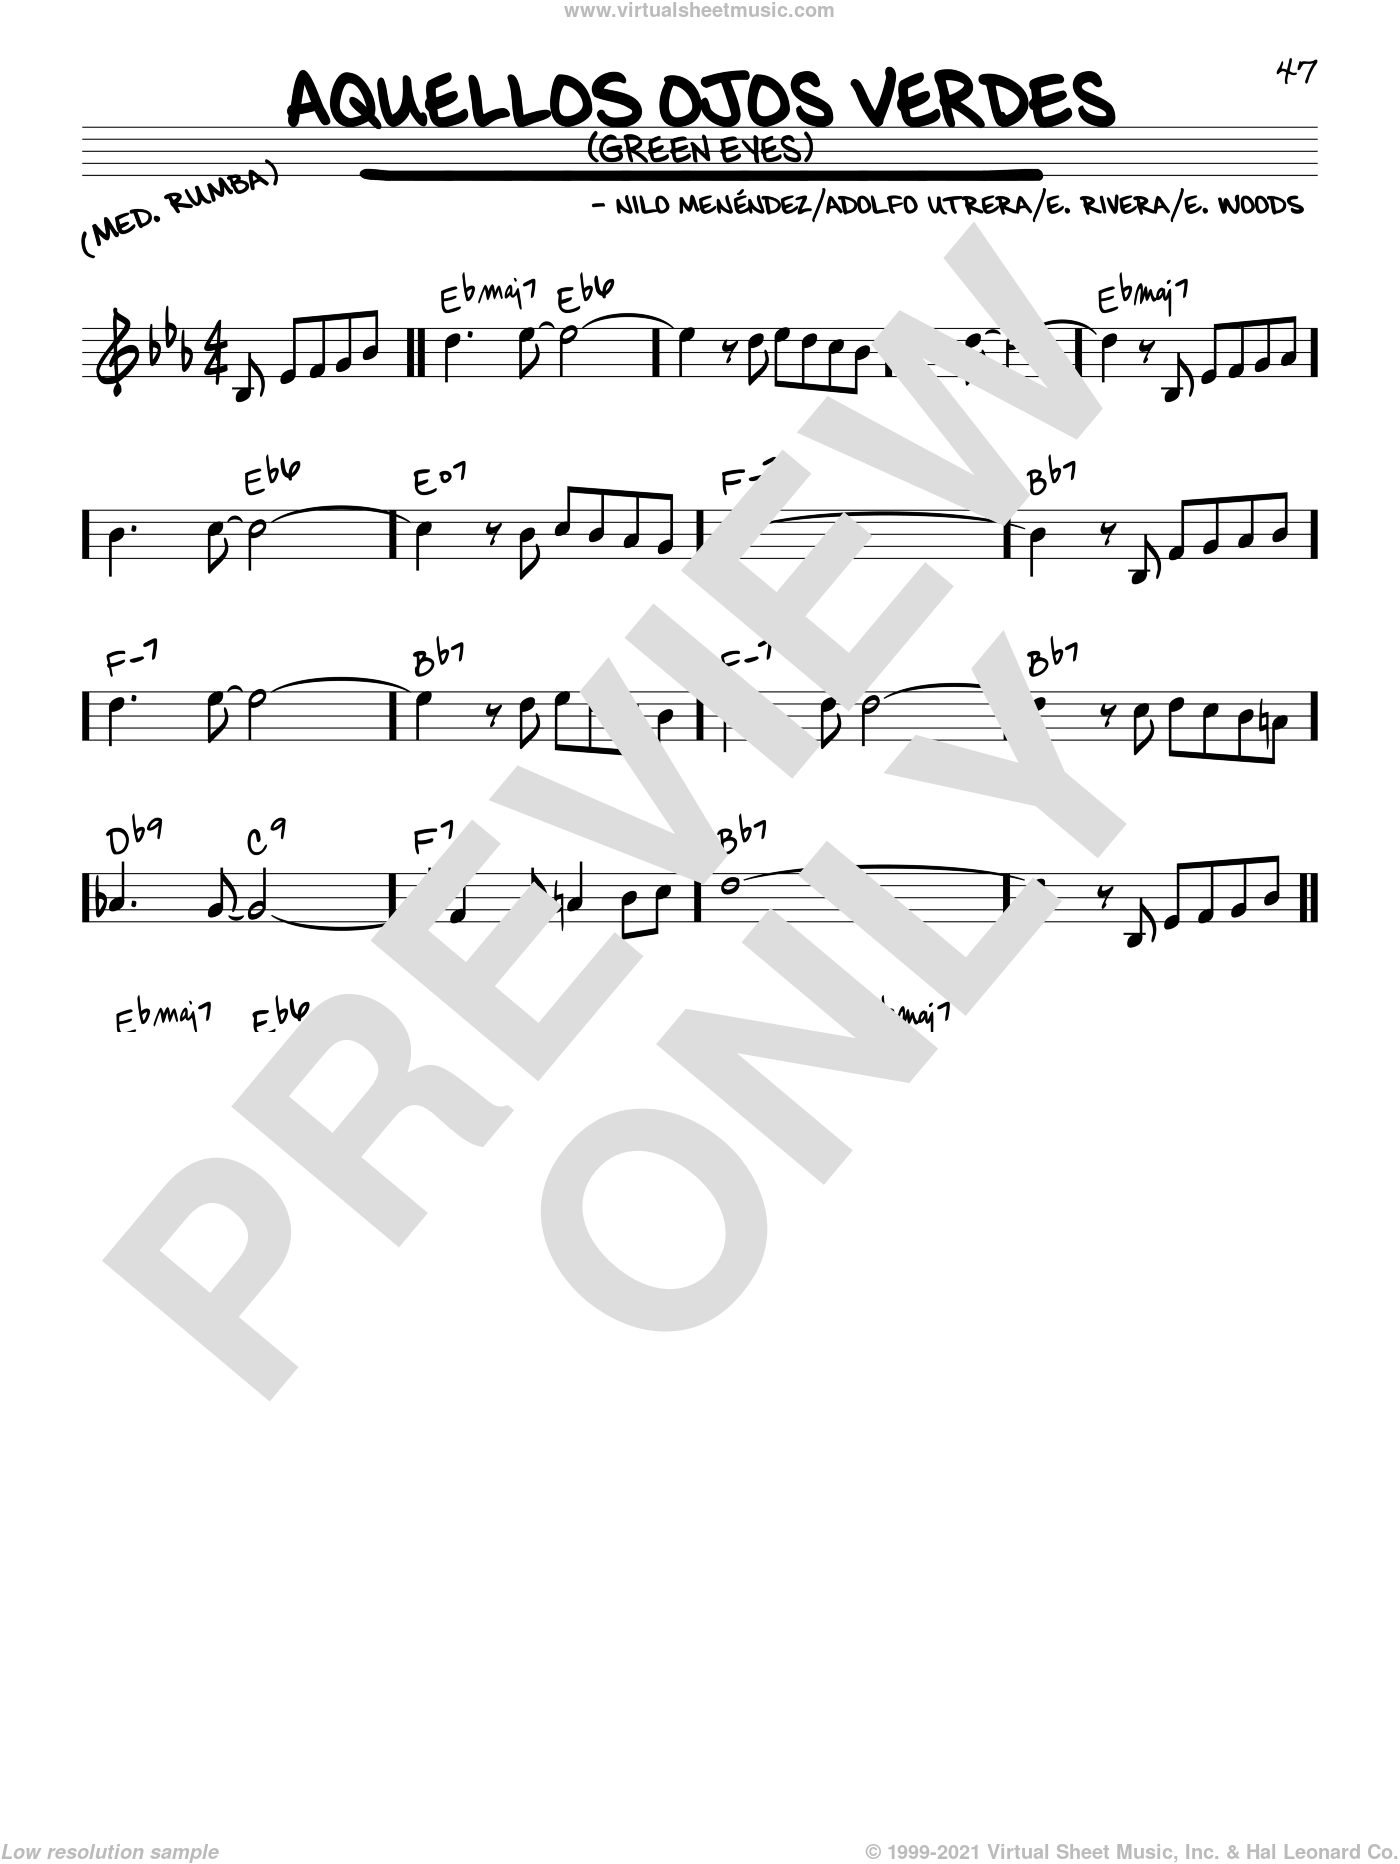 Aquellos Ojos Verdes (Green Eyes) sheet music for voice and other instruments (C) by E. Woods